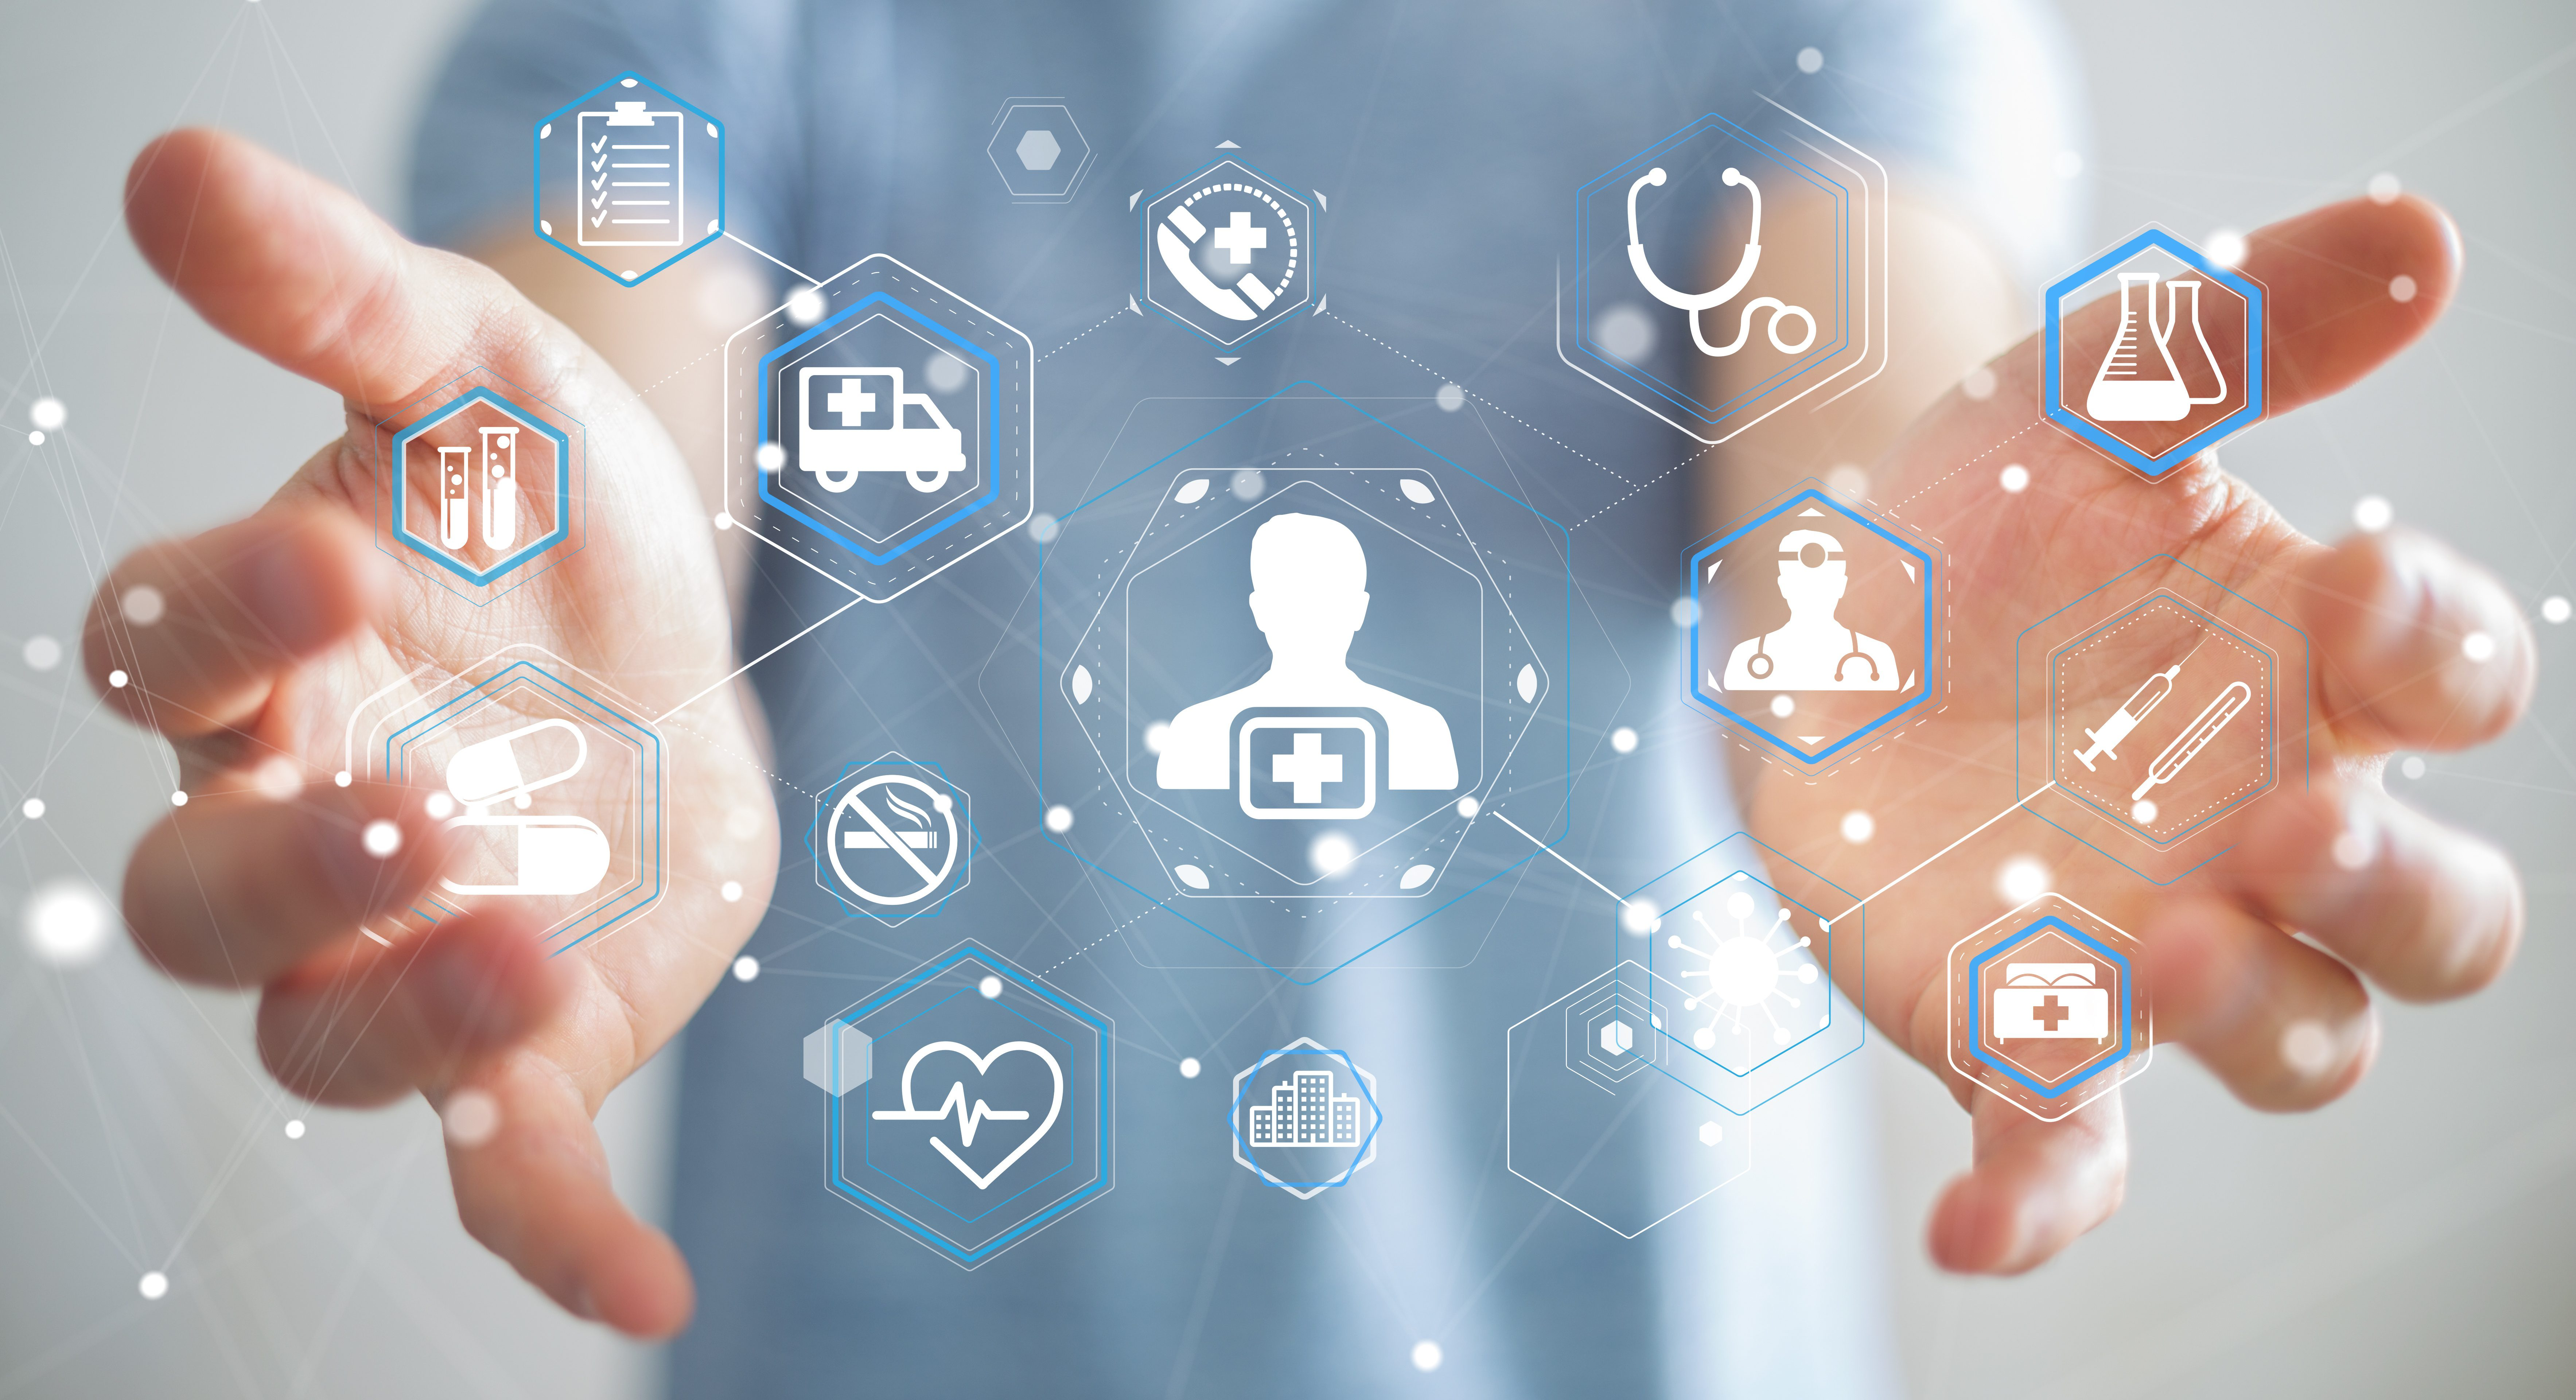 Healthcare Struggles with Safety Communication